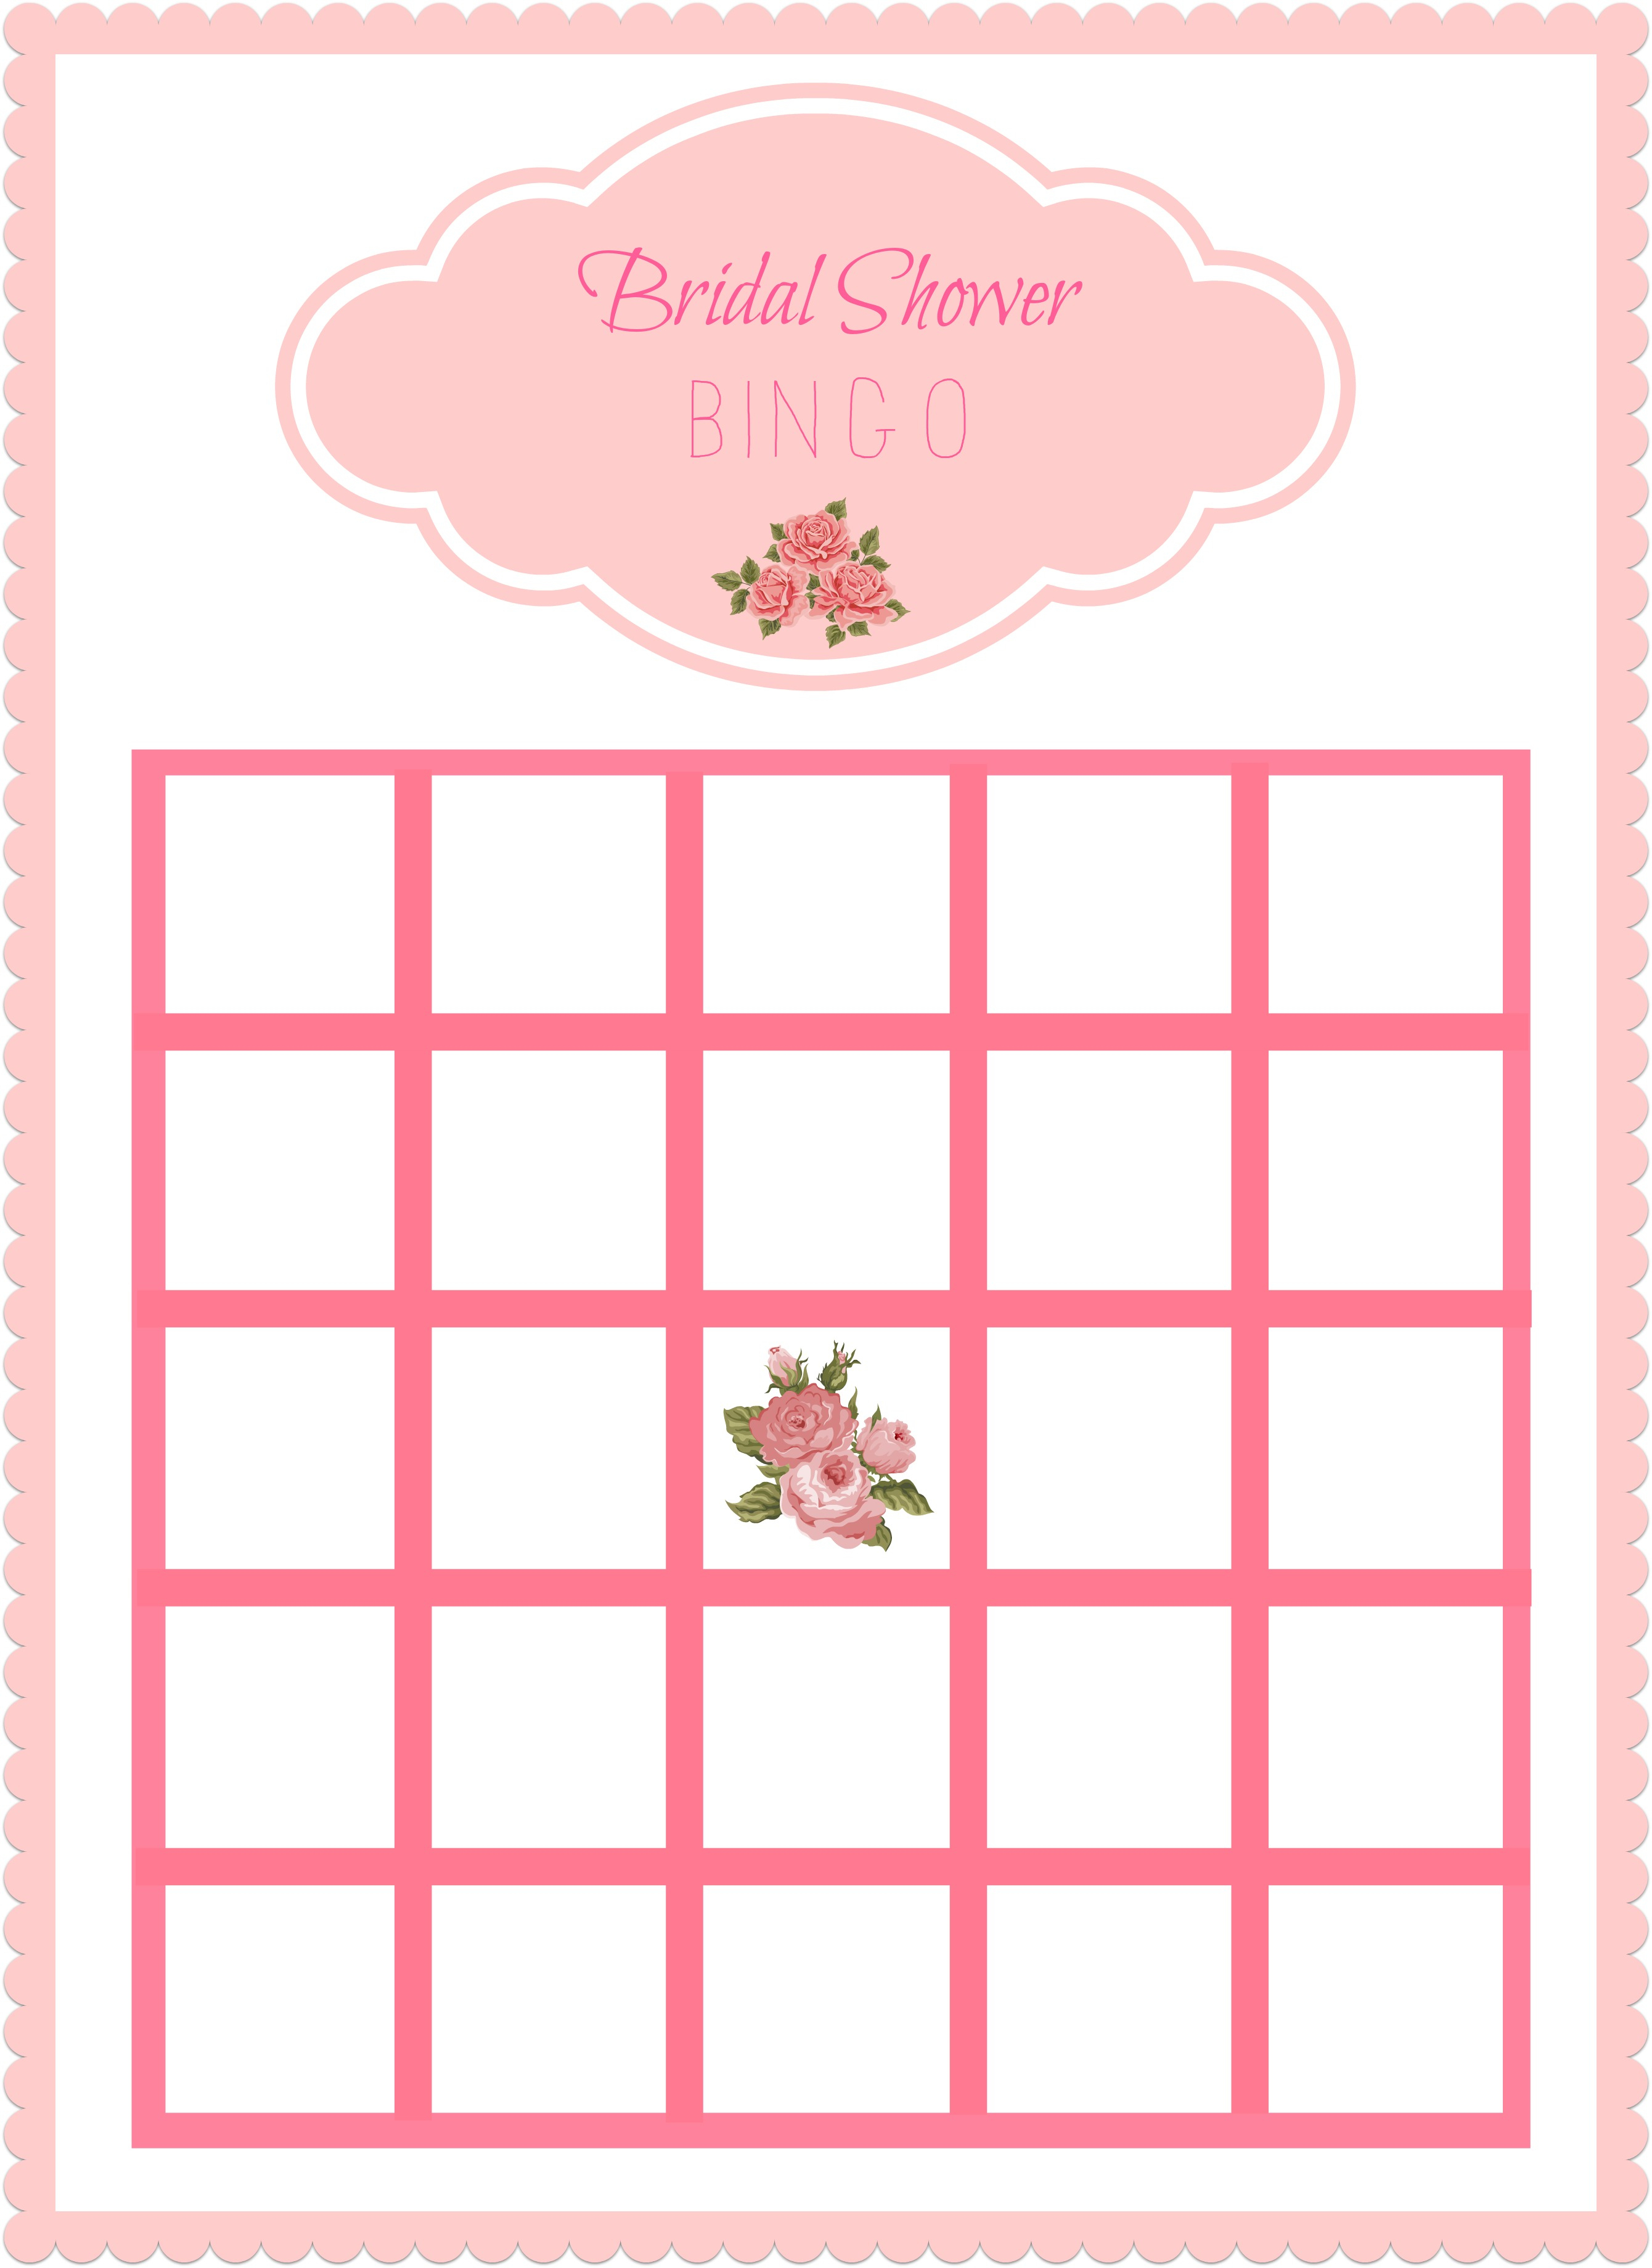 Photo : Tea Party Bridal Shower Image - Free Printable Tea Party Games